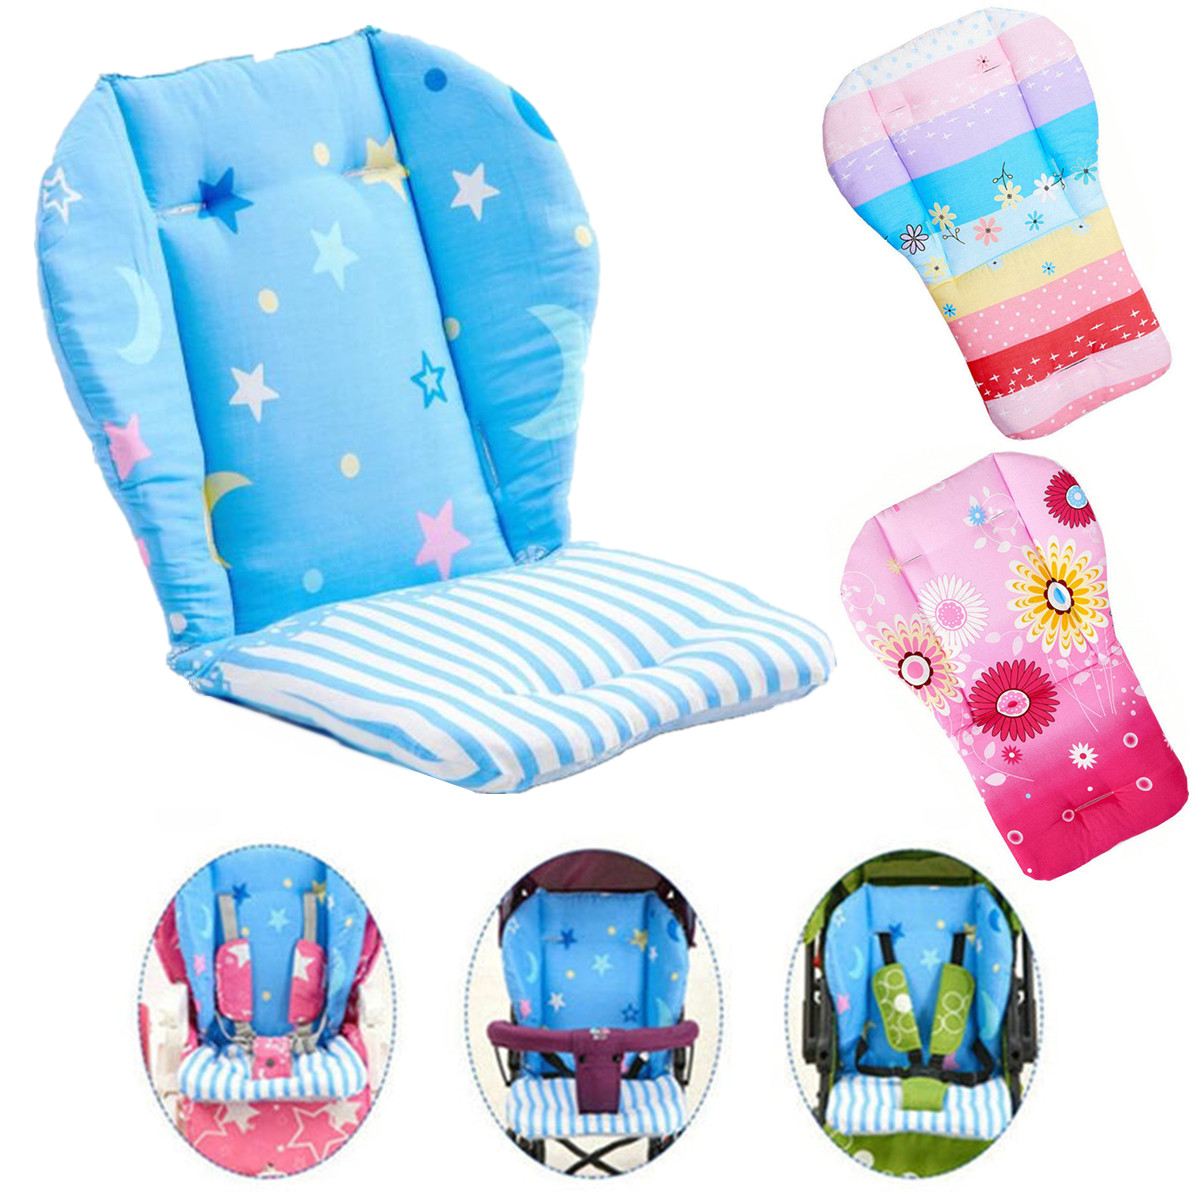 Pure Cotton Baby Stroller Seat Soft Cushion Kids Pushchair Car Cart High Chair Seat Trolley Soft Baby Stroller Cushion Pad Acces